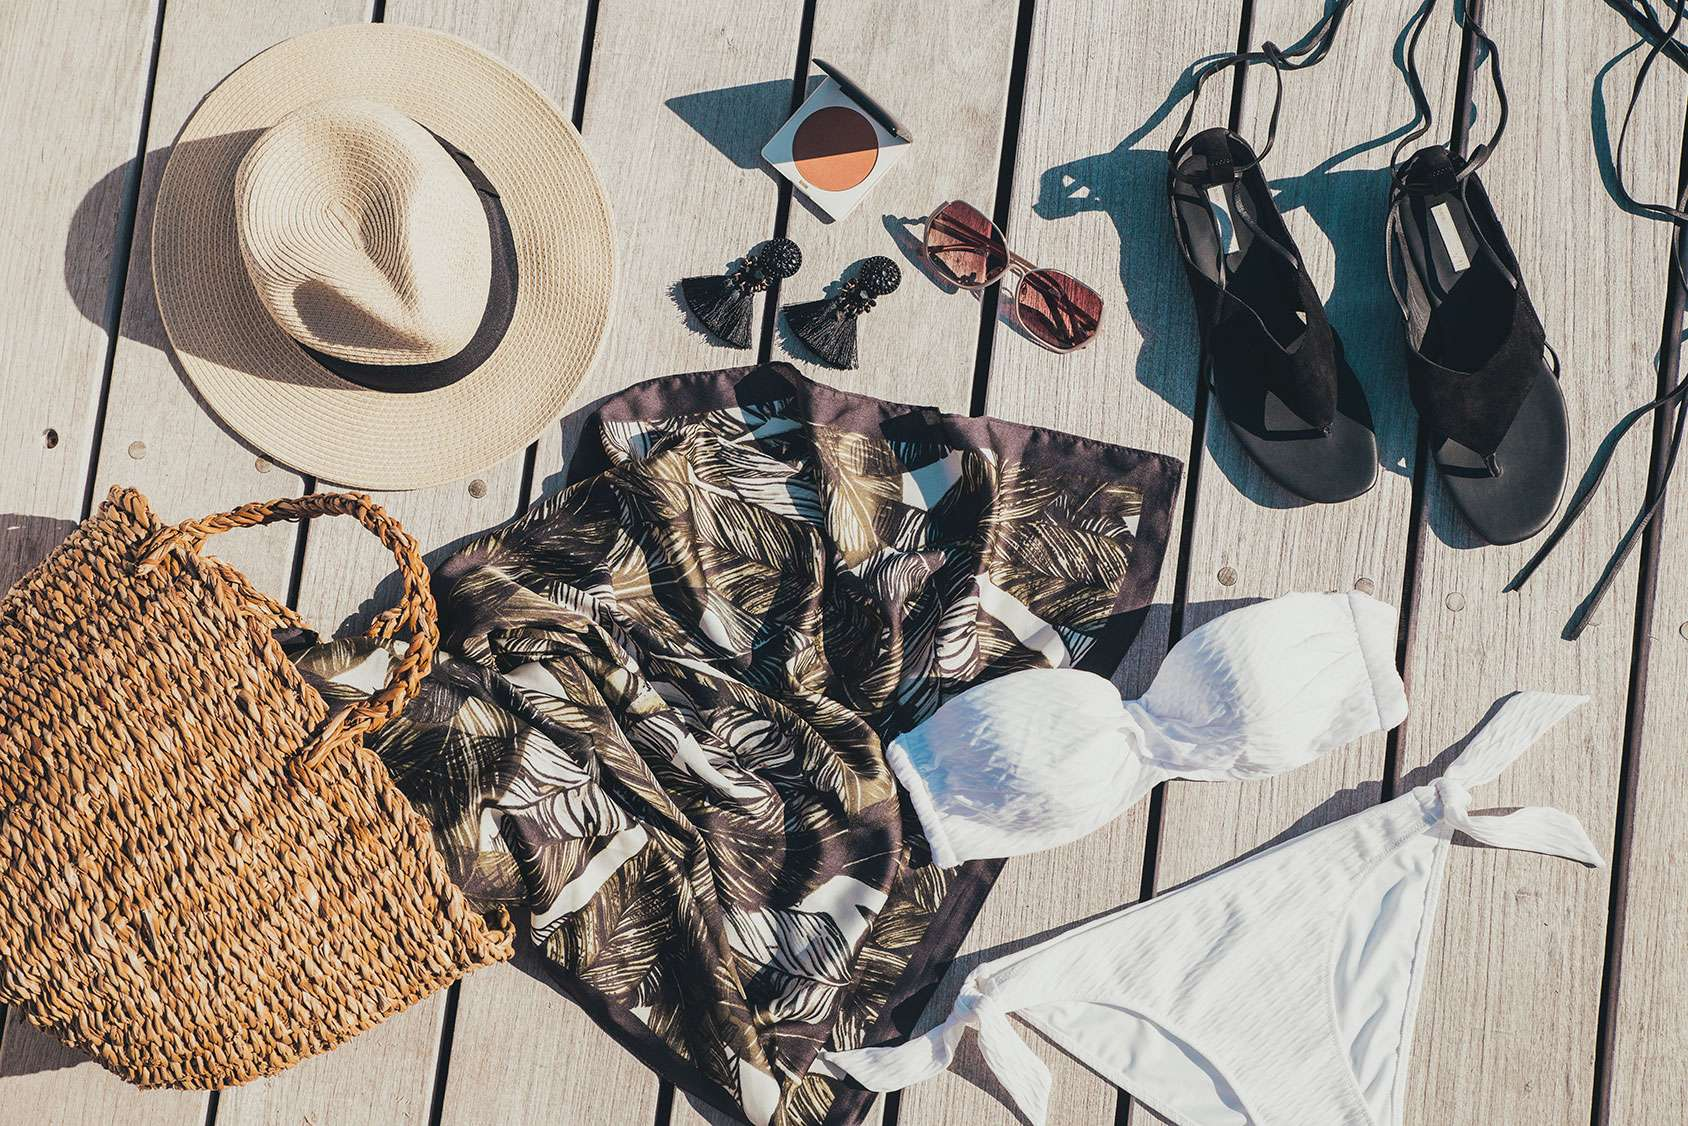 Lulama Wolf's Holiday Packing Essentials